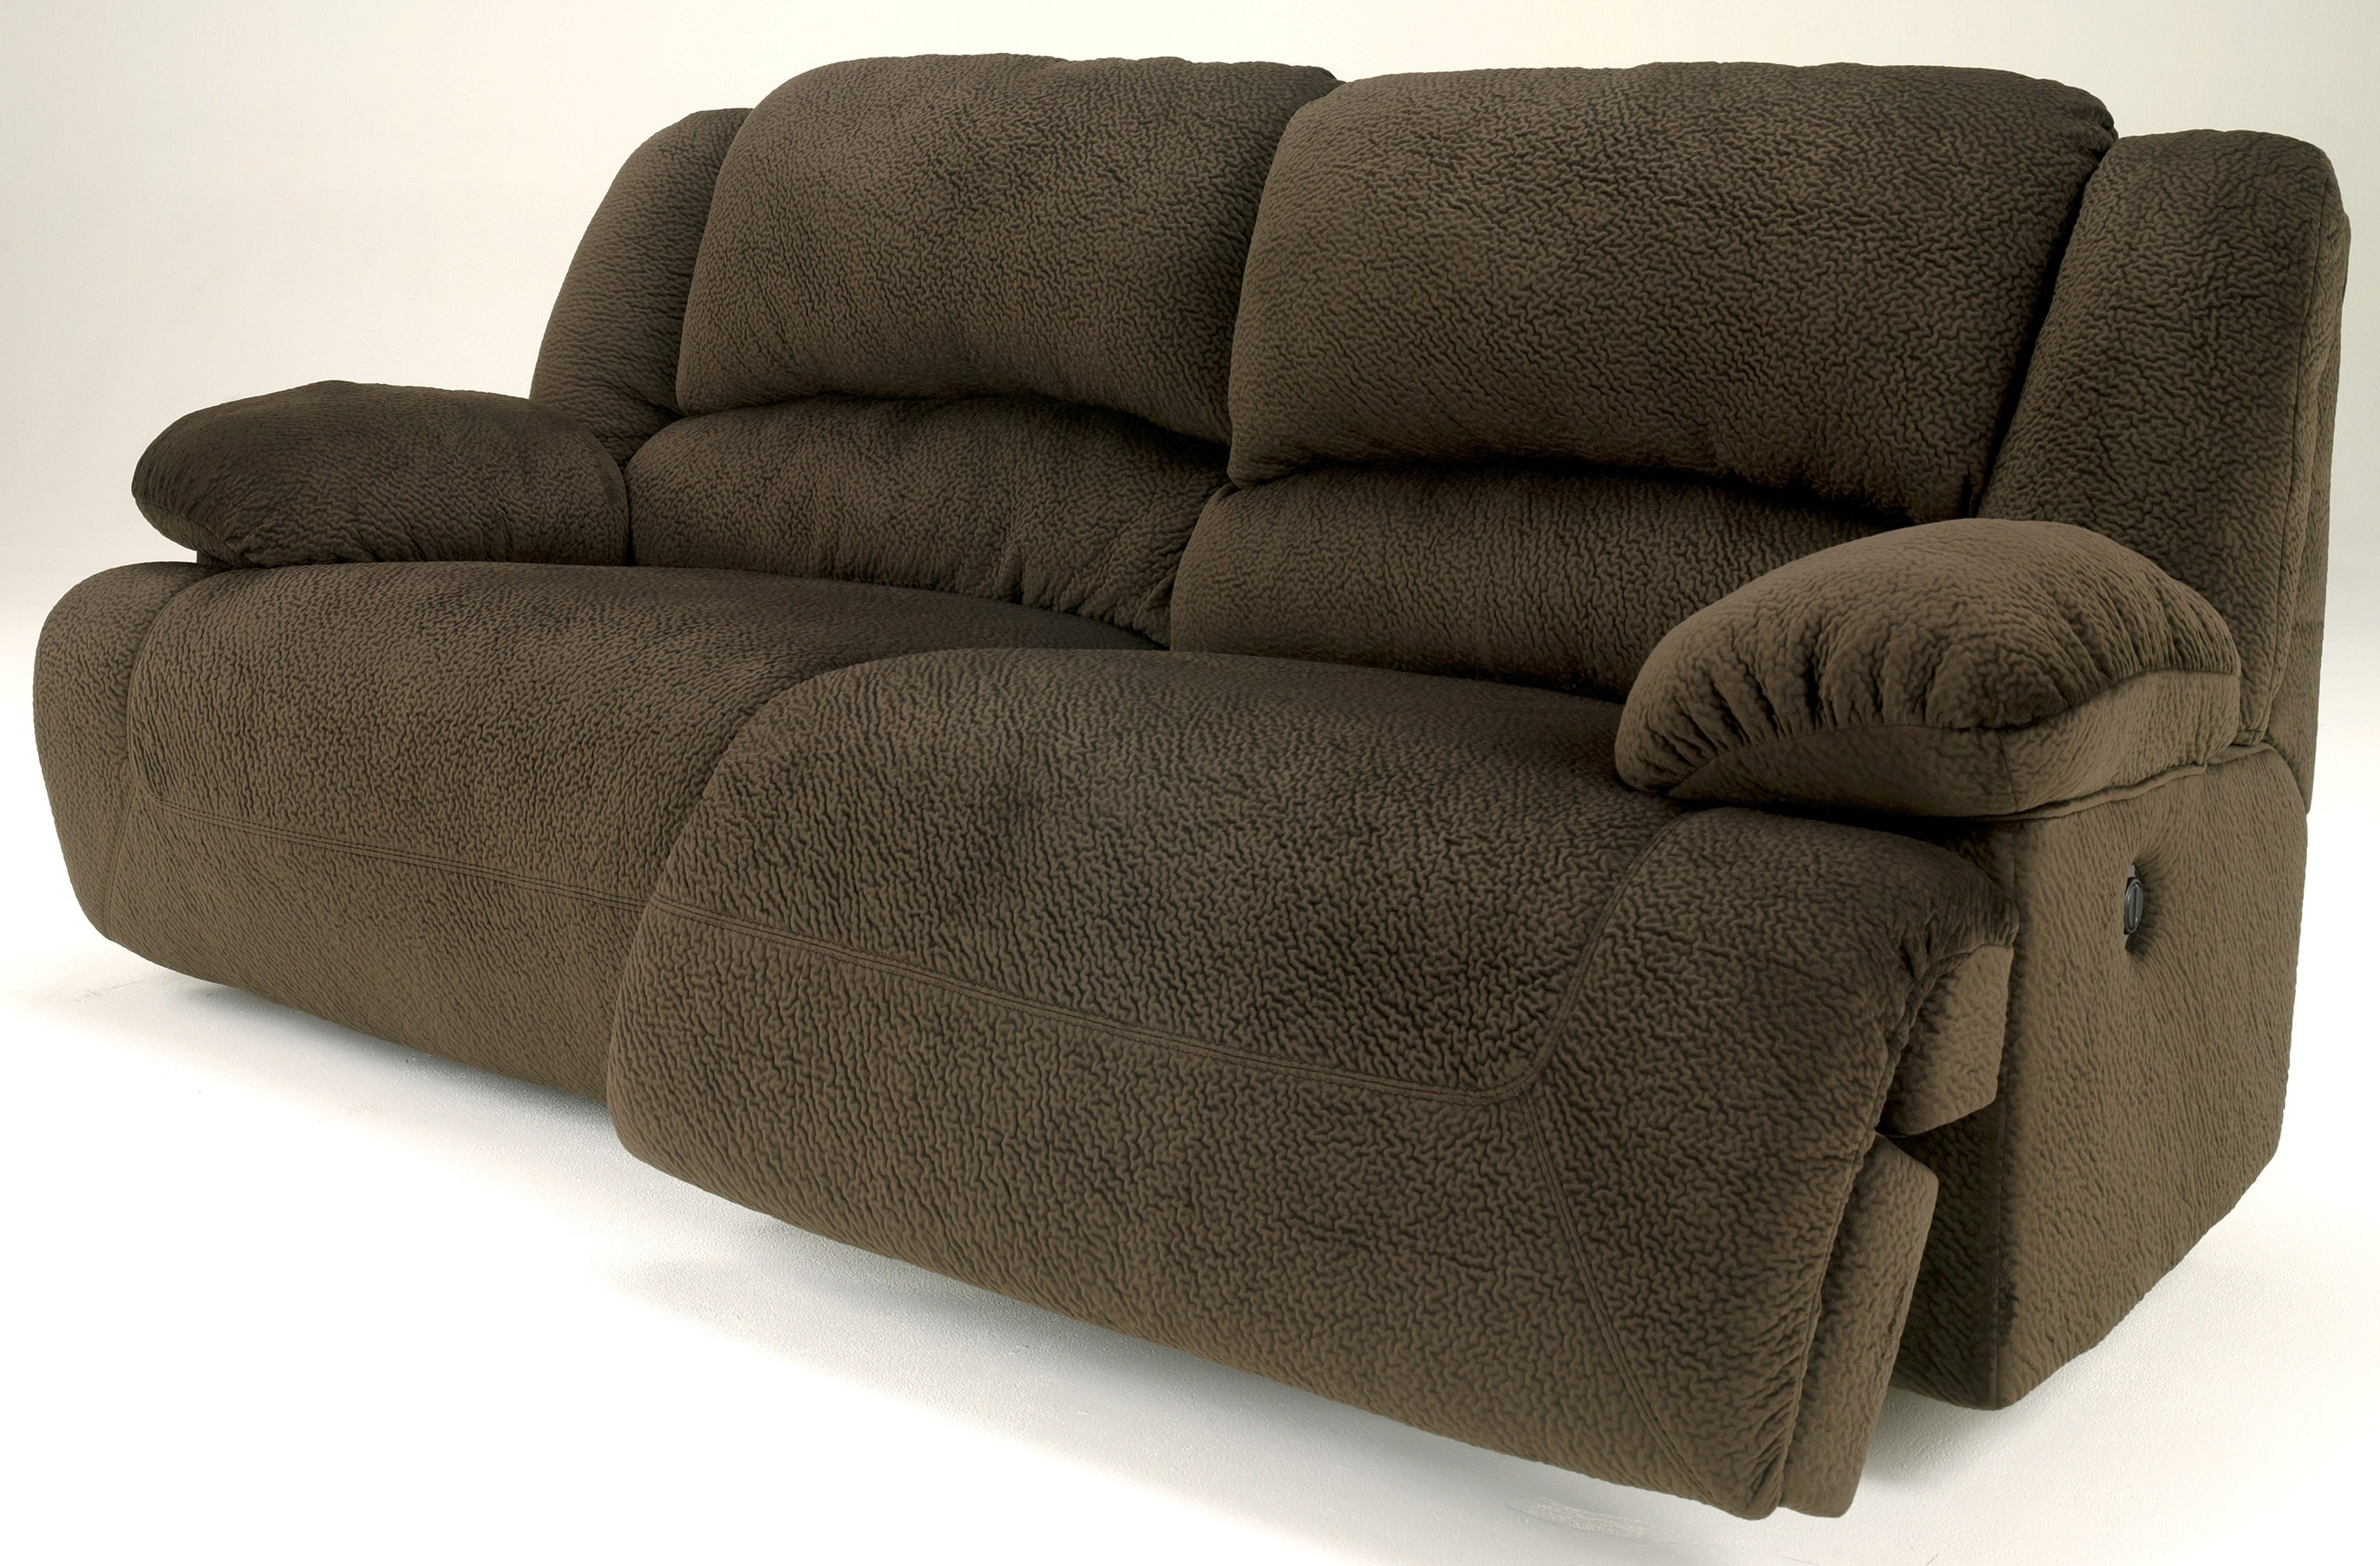 2 Seat Recliner Sofas Within Widely Used Signature Designashley Toletta Chocolate 2 Seat Reclining Sofa (View 4 of 20)